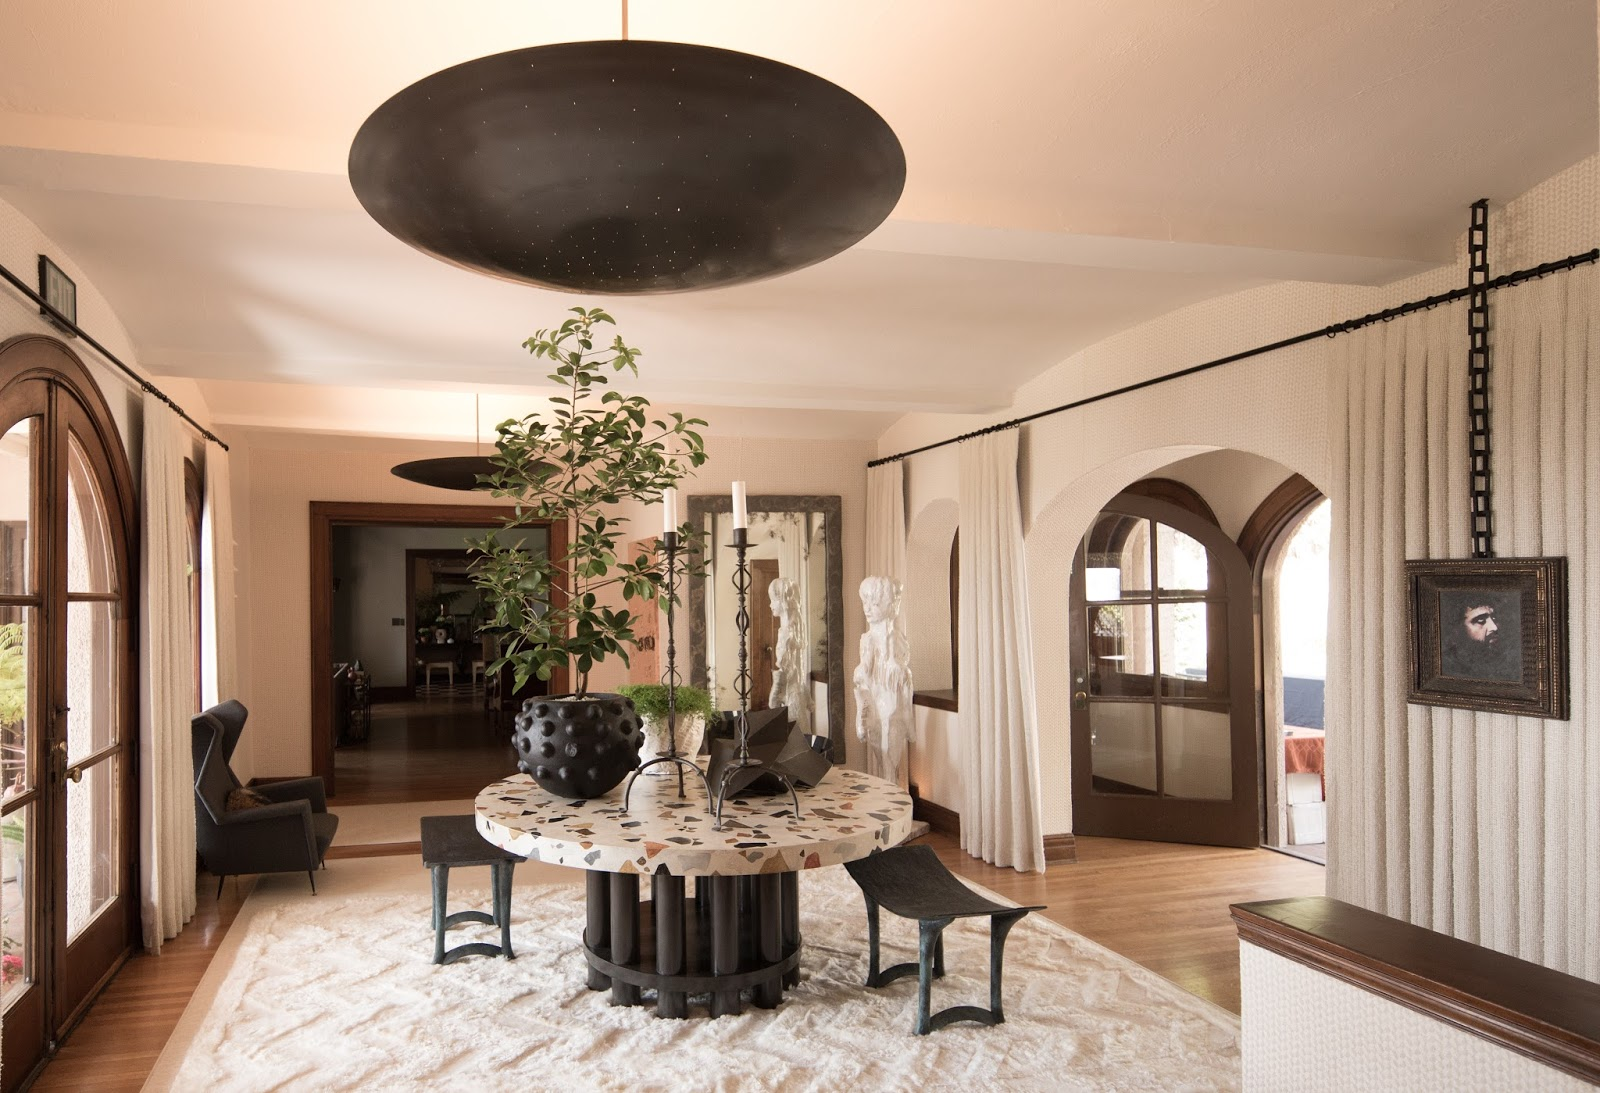 Because it is an historic site the original kitchen in the mansion cannot be removed and renovated but a design team from williams sonoma home gave the